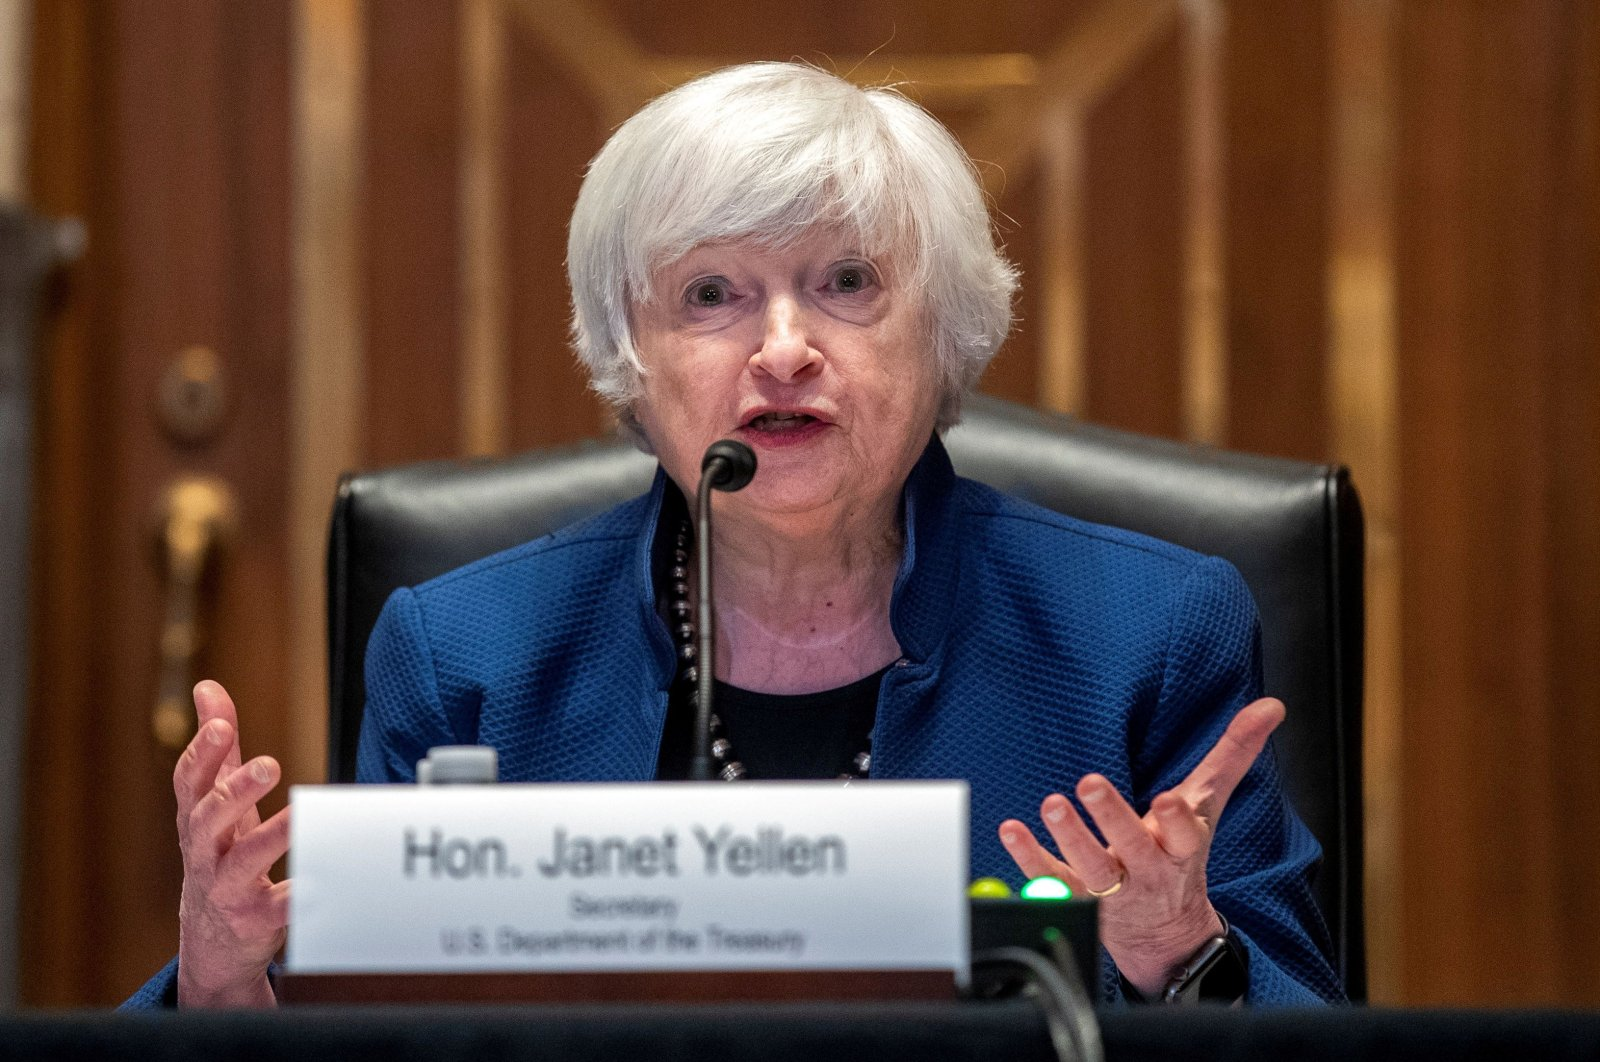 U.S. Treasury Secretary Janet Yellen testifies before the Senate Appropriations Subcommittee on Financial Services about the FY22 Treasury budget request on Capitol Hill, in Washington, D.C., U.S., June 23, 2021. (Reuters Photo)